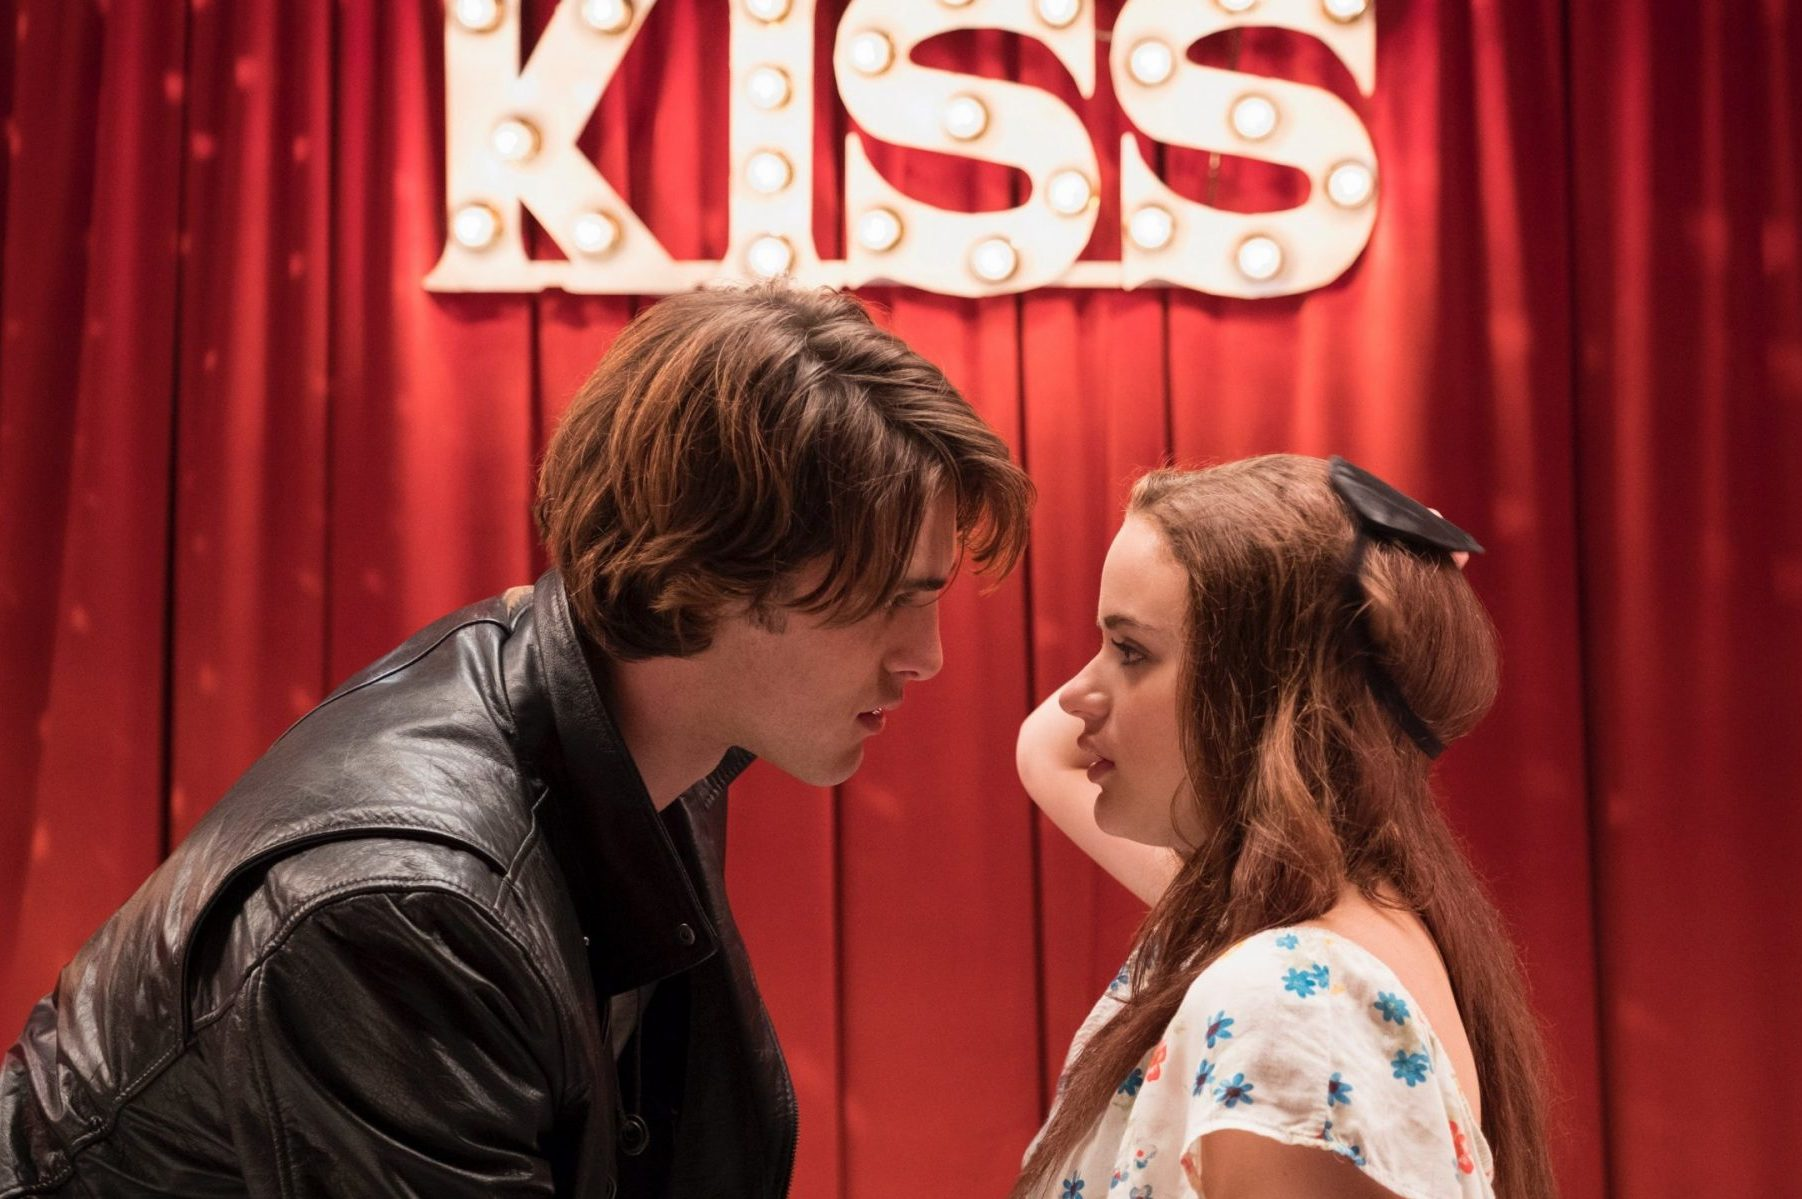 The two main characters prepare to kiss in the kissing booth.